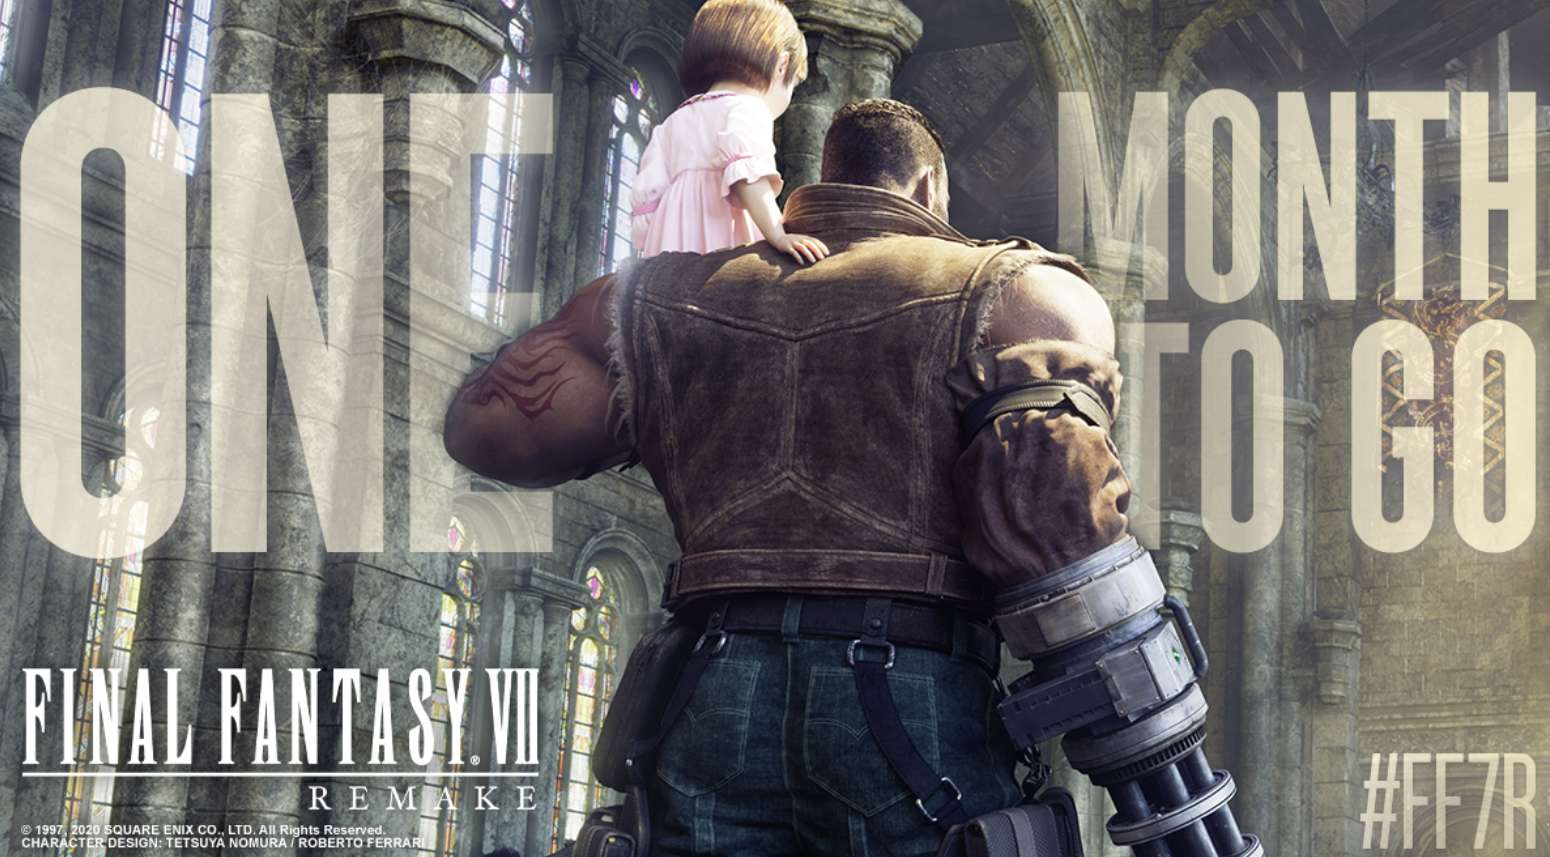 Final Fantasy 7 Remake Promo Art Gives Us One Of Our First Looks At Barret's Daughter Marlene